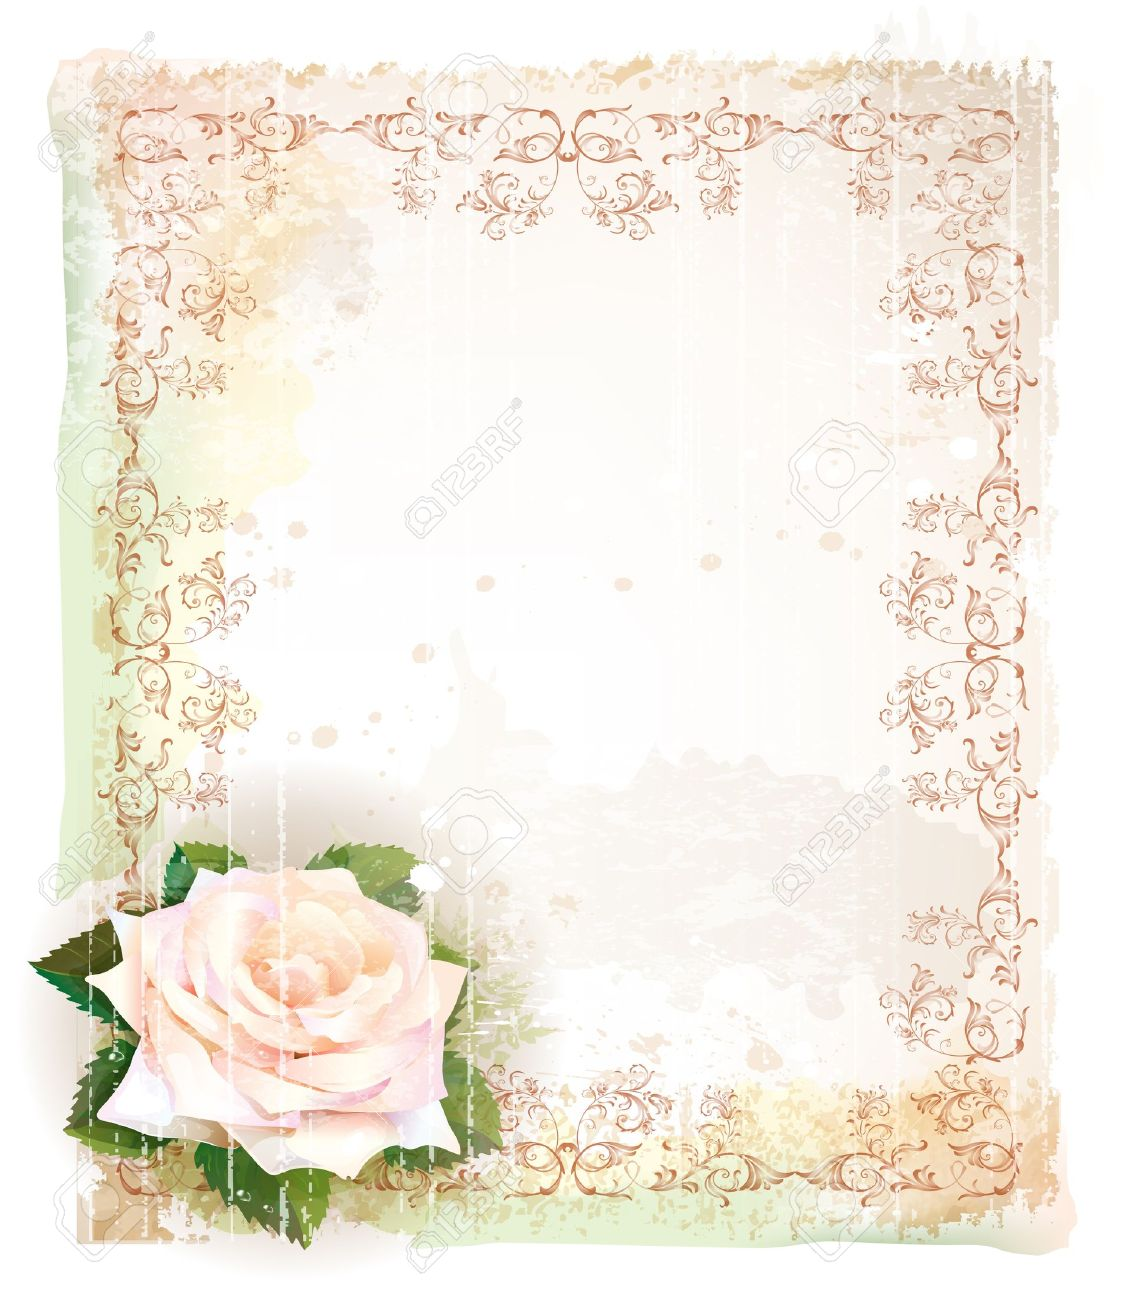 Vintage frame  with rose  Imitation of watercolor painting Stock Vector - 14202500